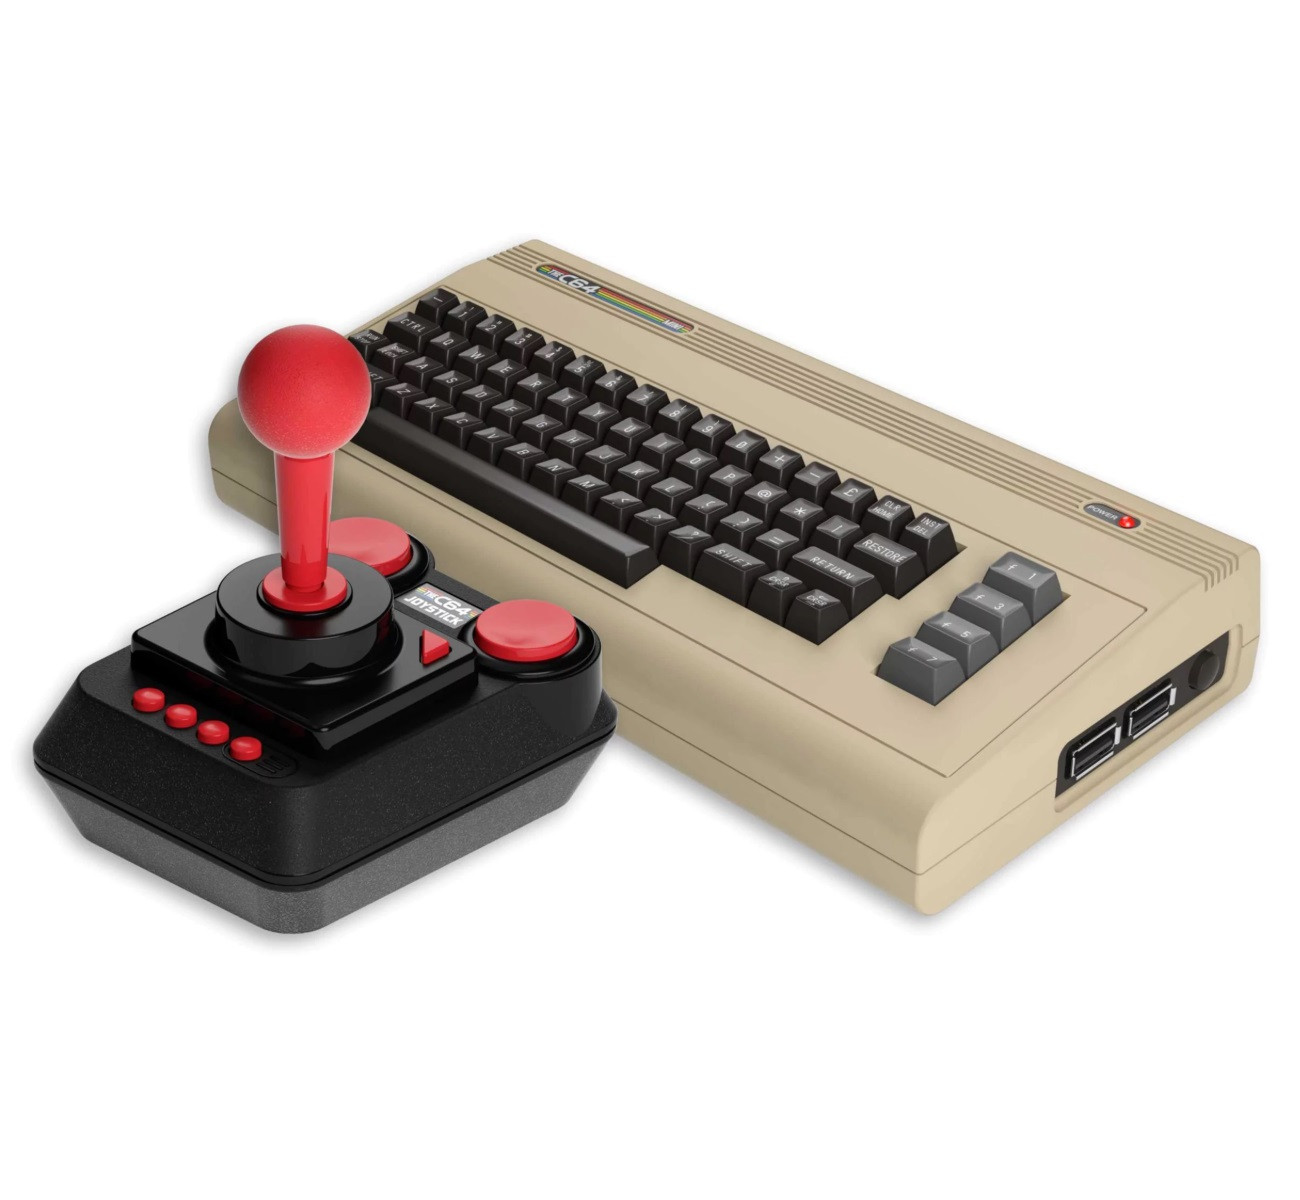 Commodore 64 Mini C64